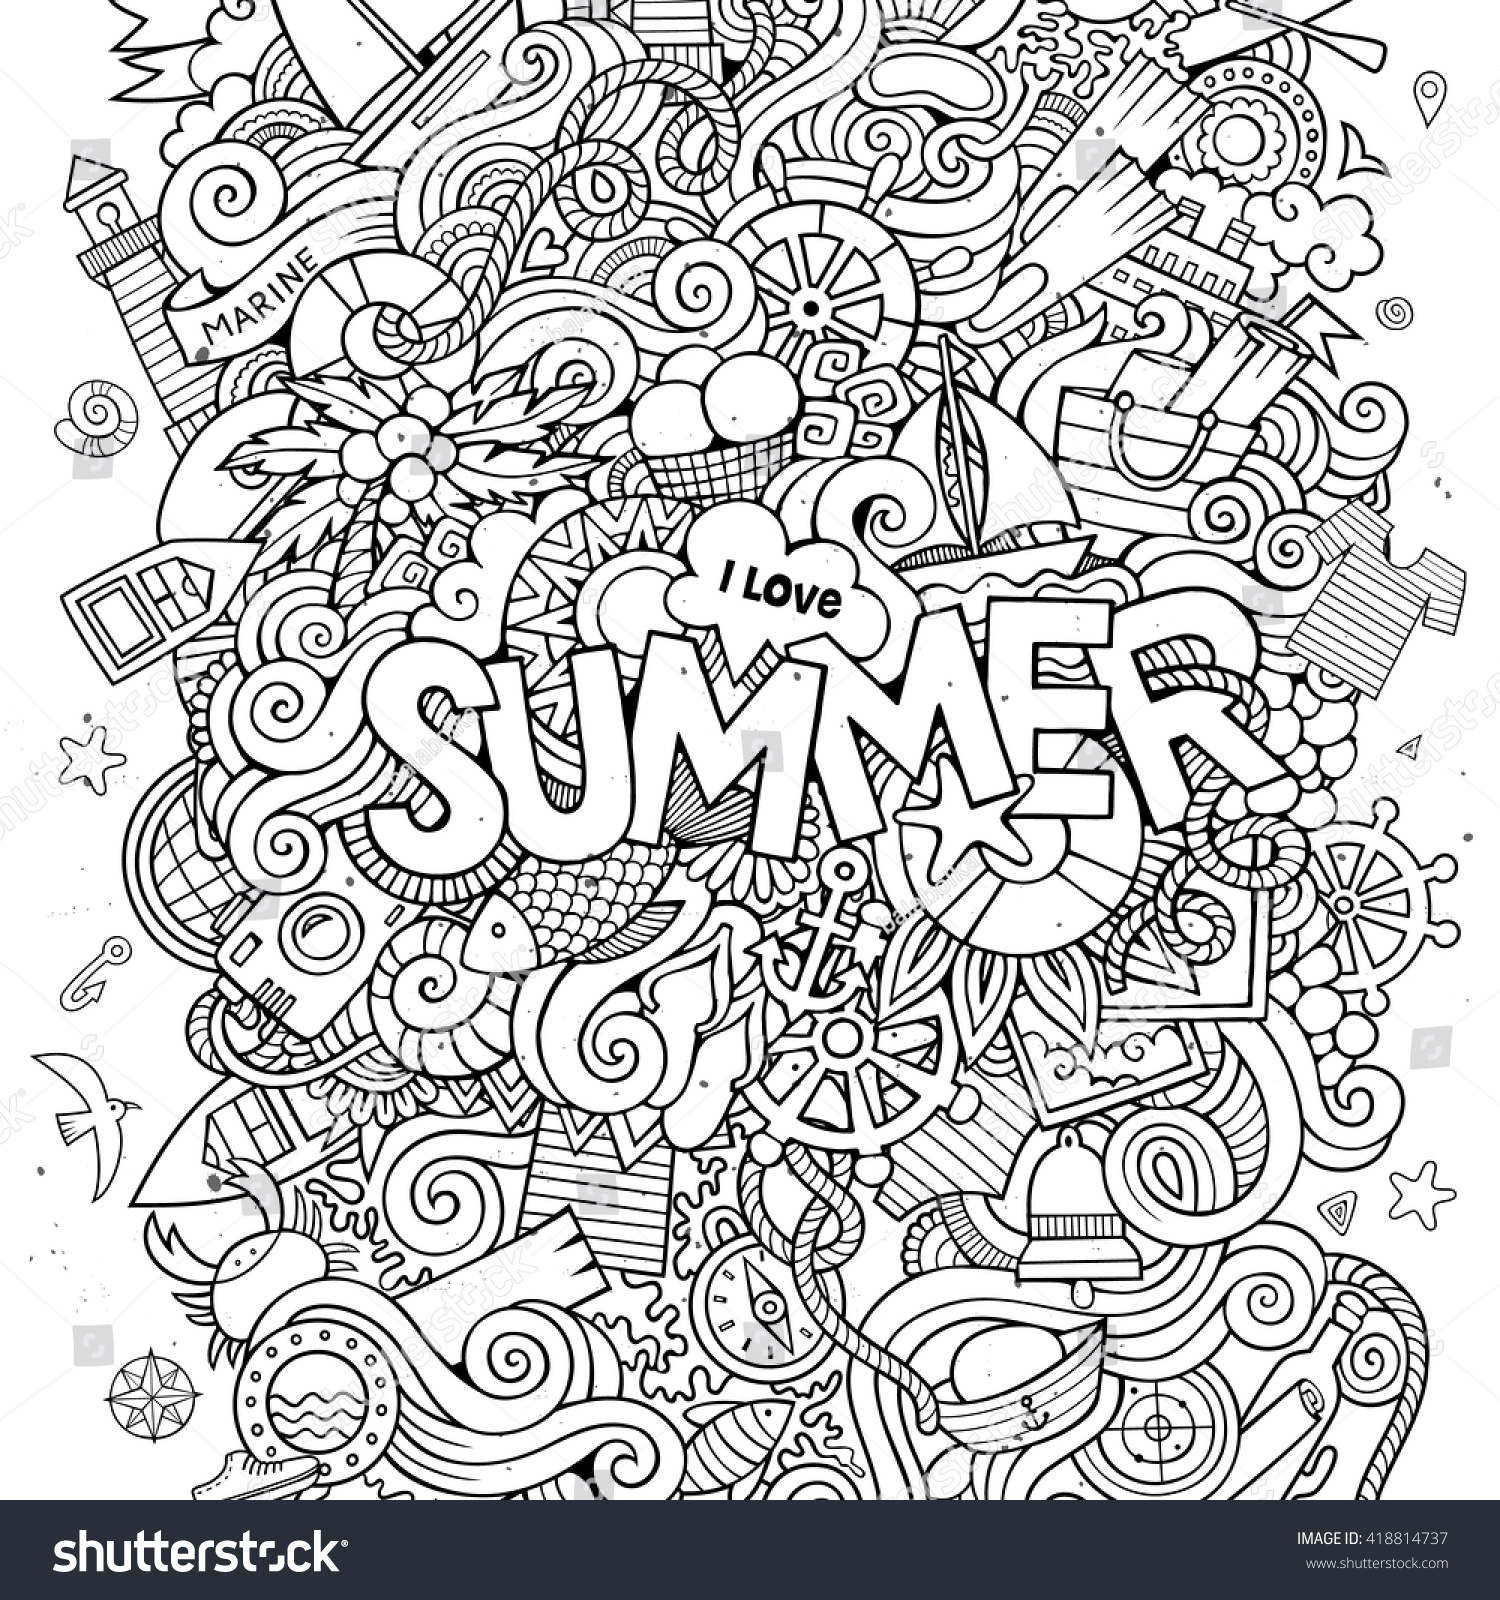 Stock vector music hand lettering and doodles elements - Summer Hand Lettering And Doodles Elements Vector Illustration